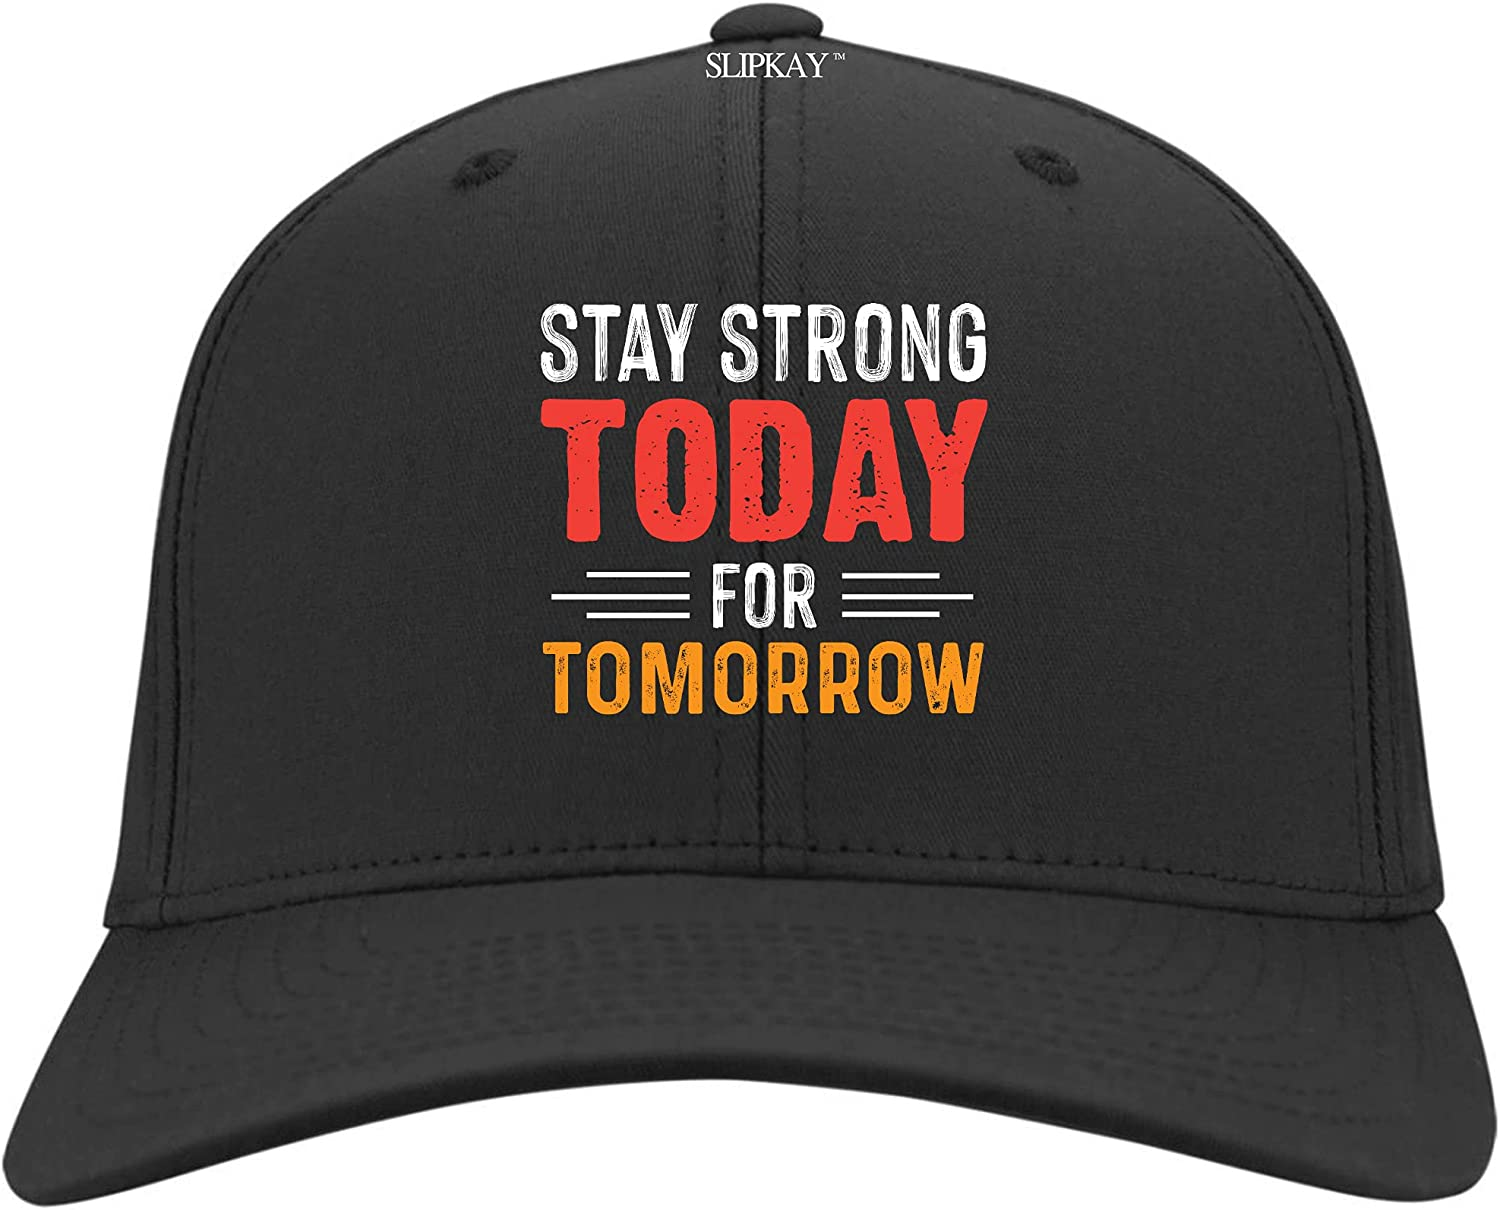 Stay Strong Today for Tomorrow Hat,Twill Cap